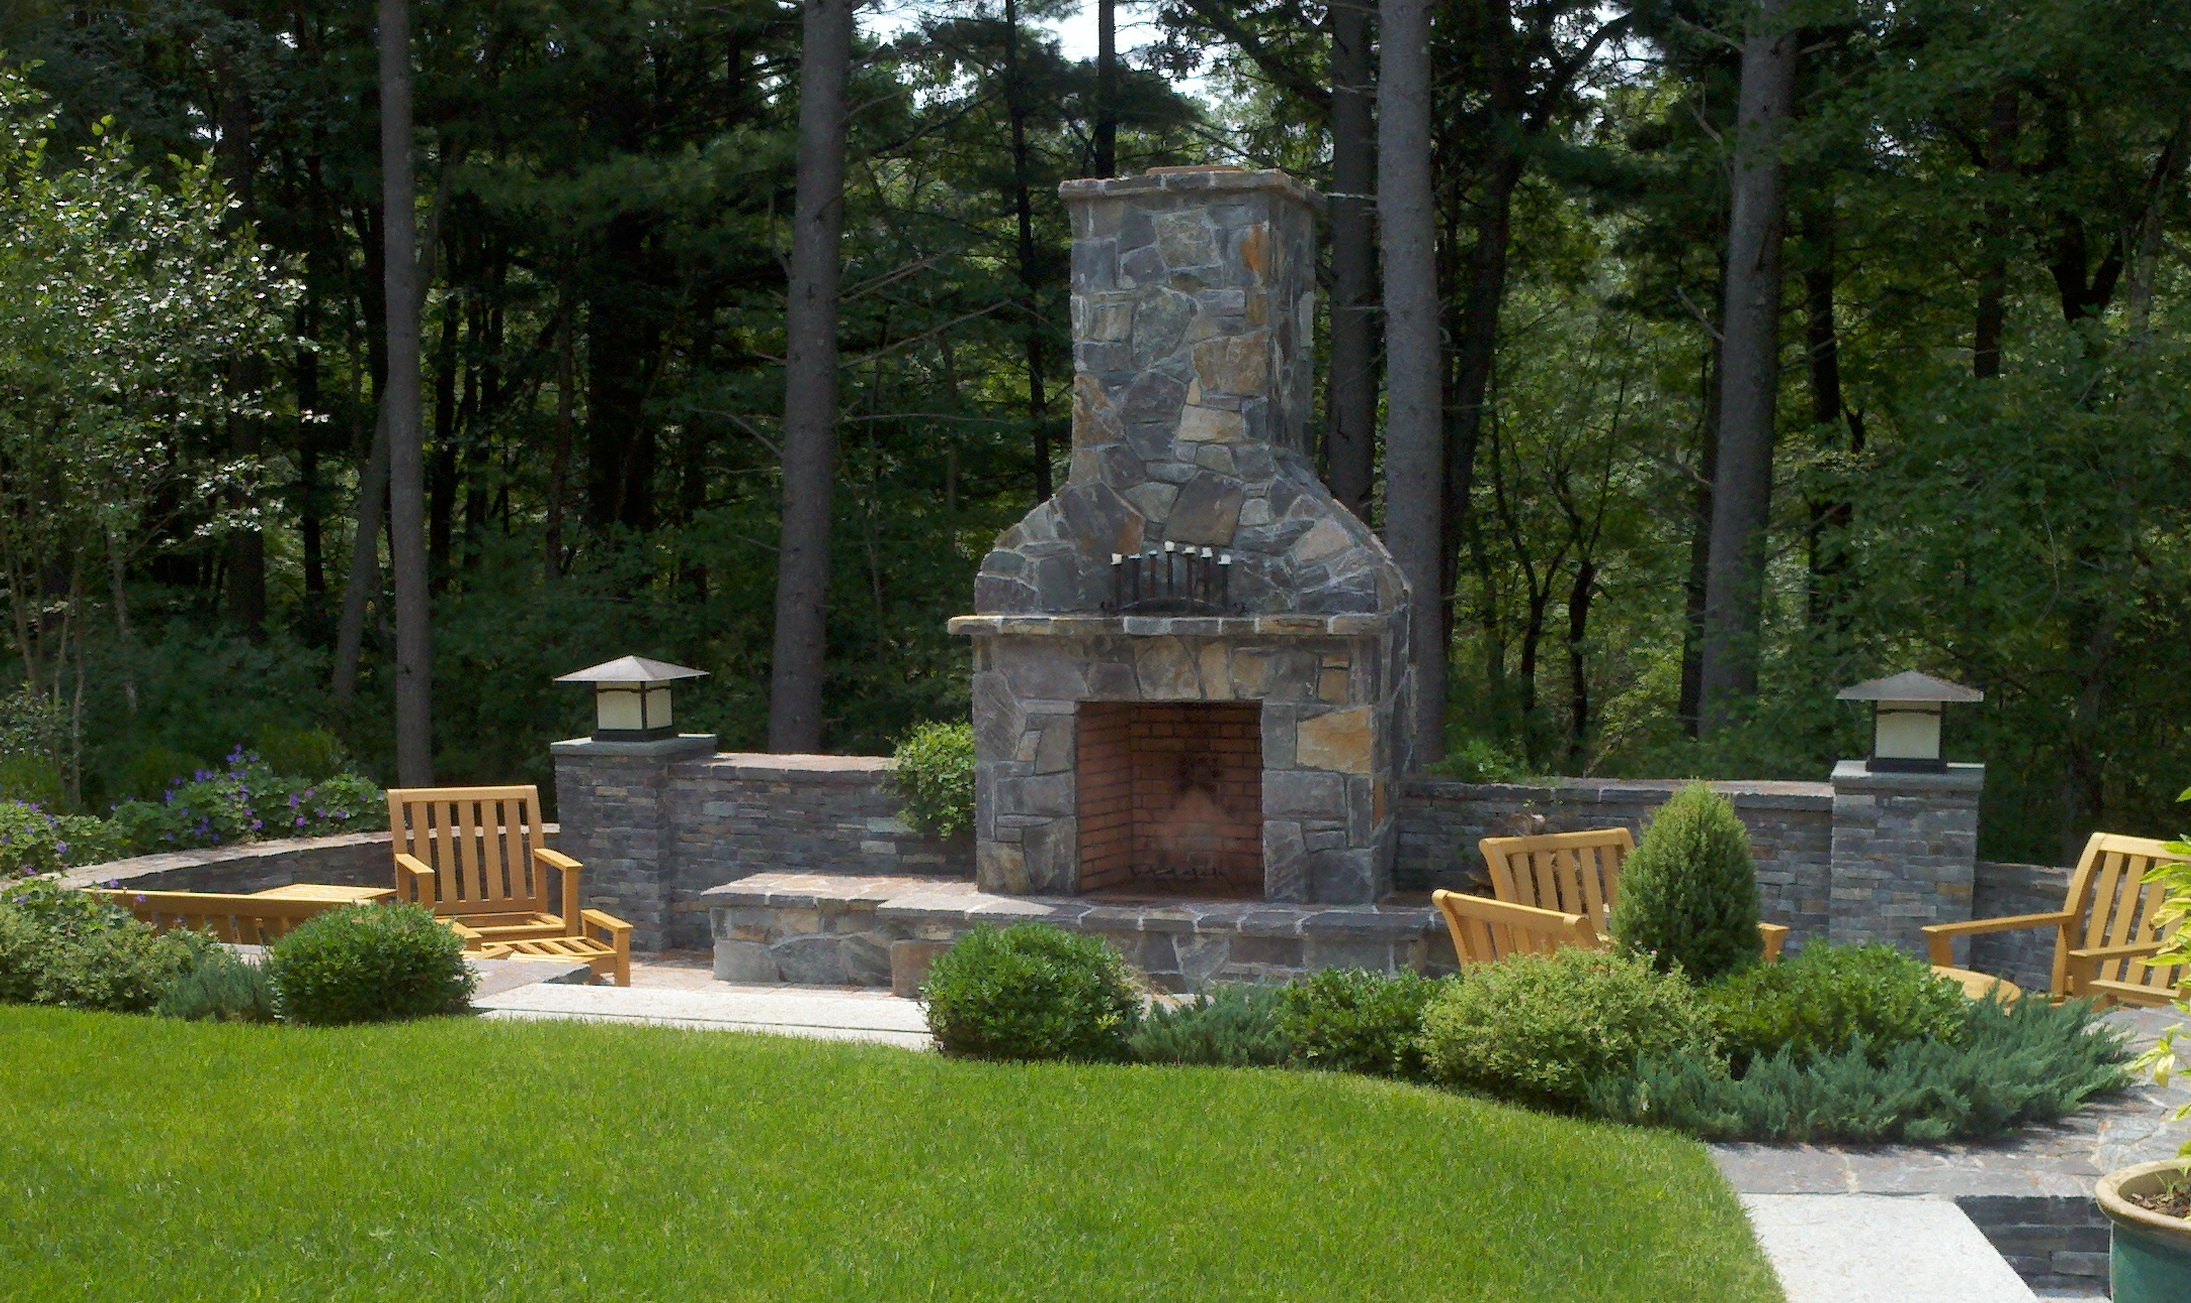 design guide for outdoor firplaces and firepits